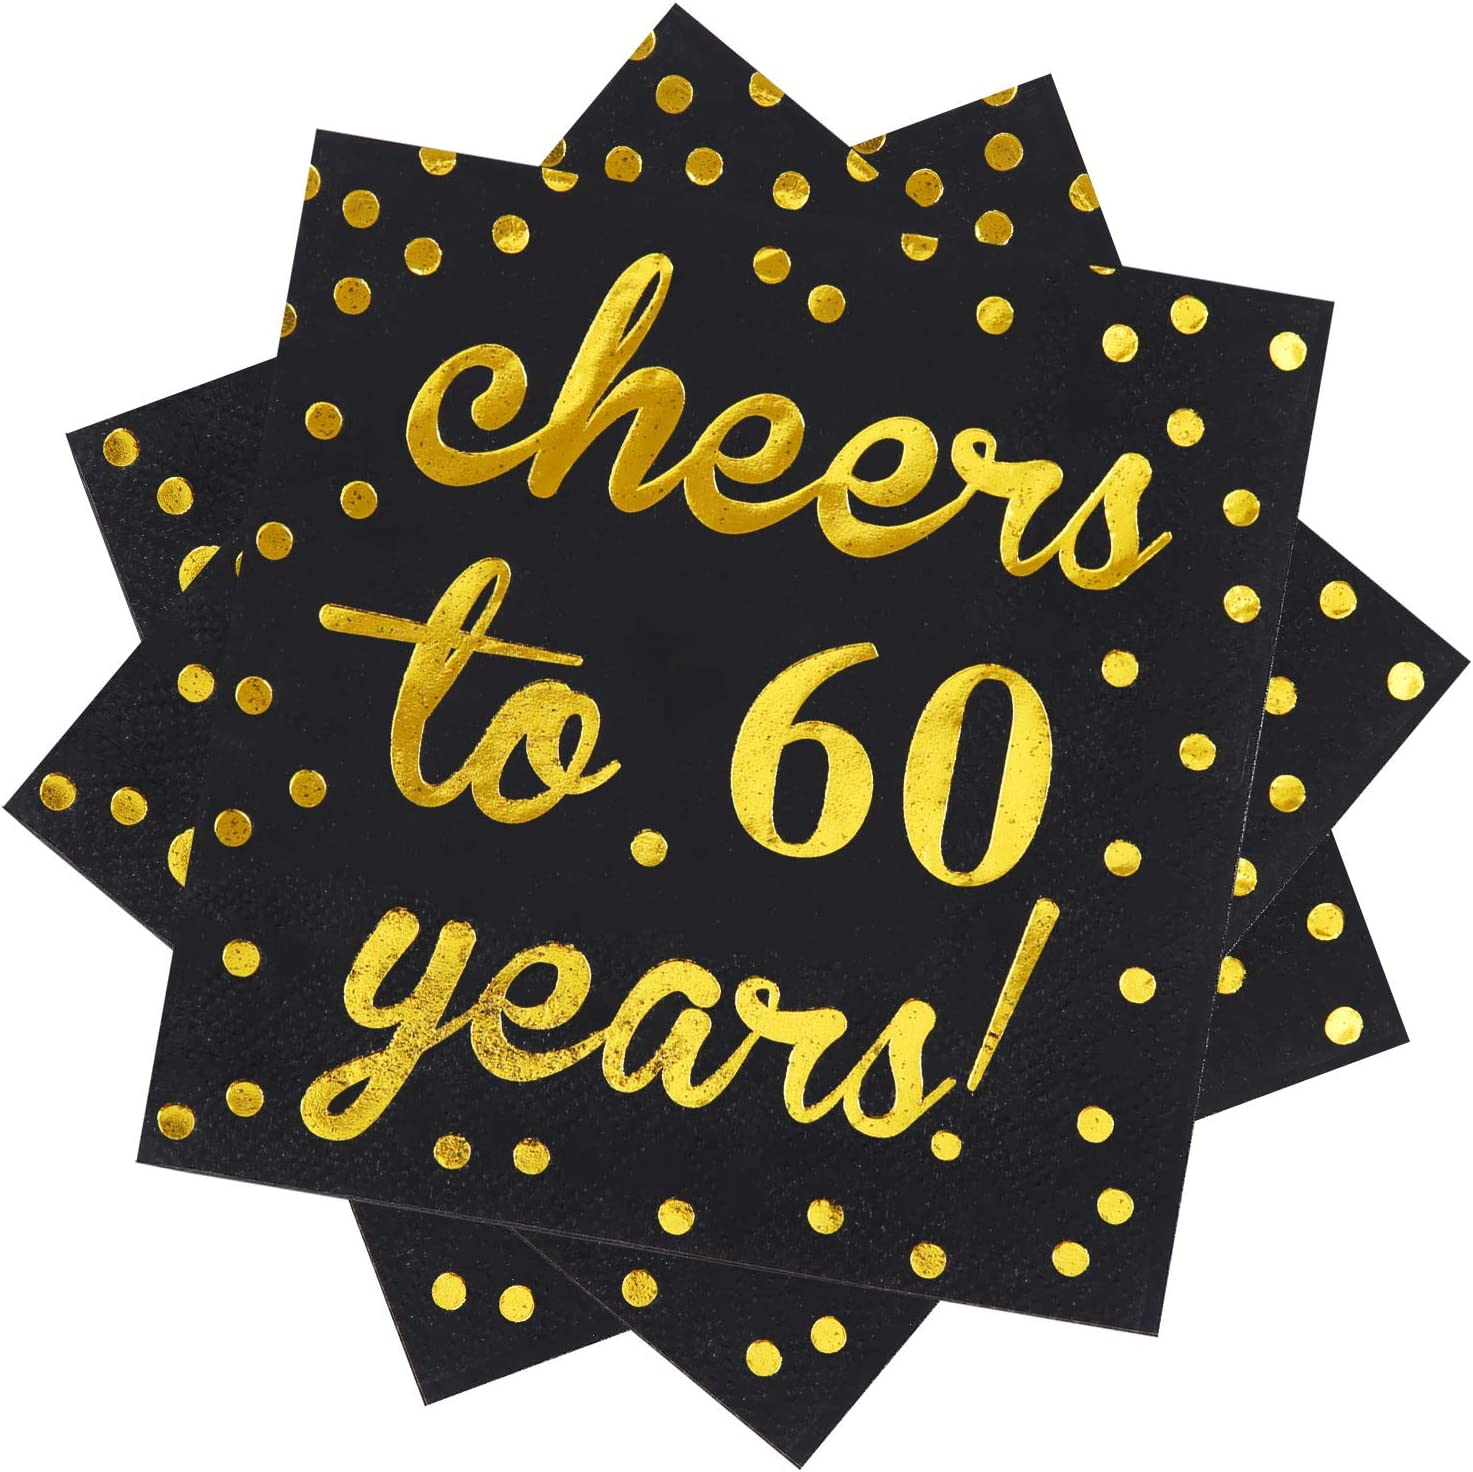 Elcoho 60 Pack Cocktail Napkins 60th Birthday Decorations Luncheon Napkins for Birthday, Anniversary Party Supplies, Cheers to 60 Years Design, 2 Layers, 5 by 5 Inches